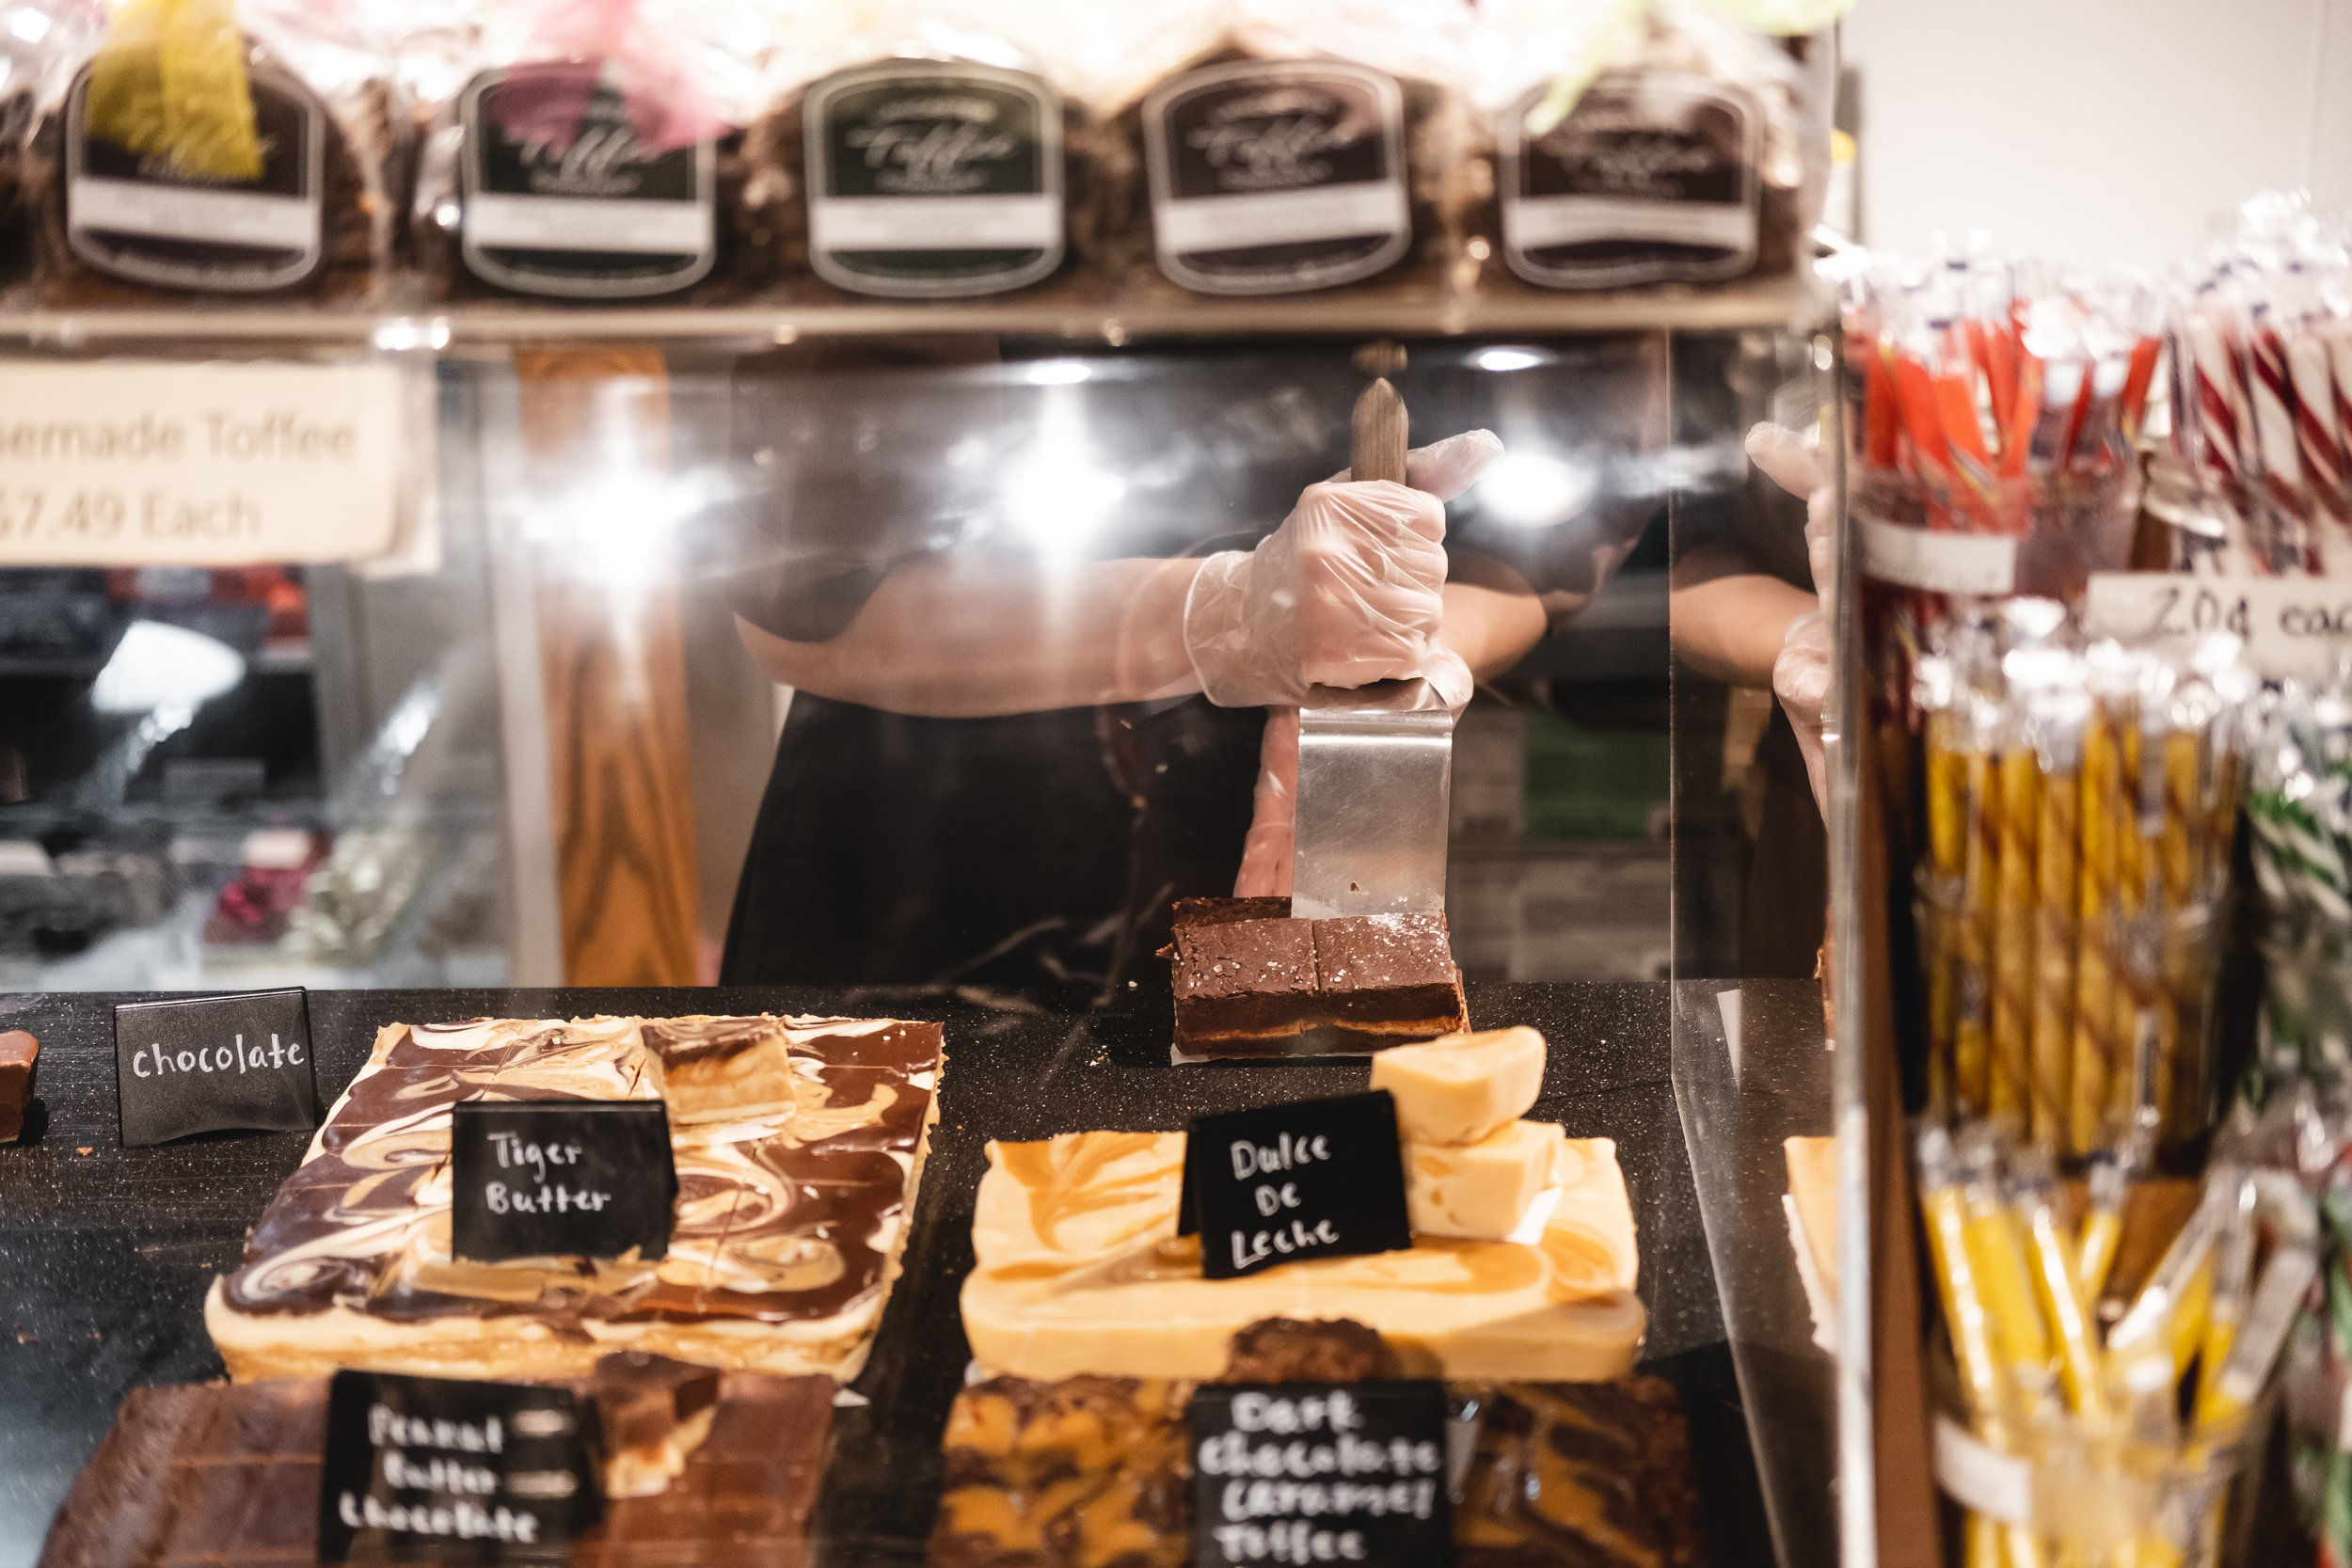 2019_READING TERMINAL MARKET_FOOD_THE PHILLY CHECKLIST-11.jpg